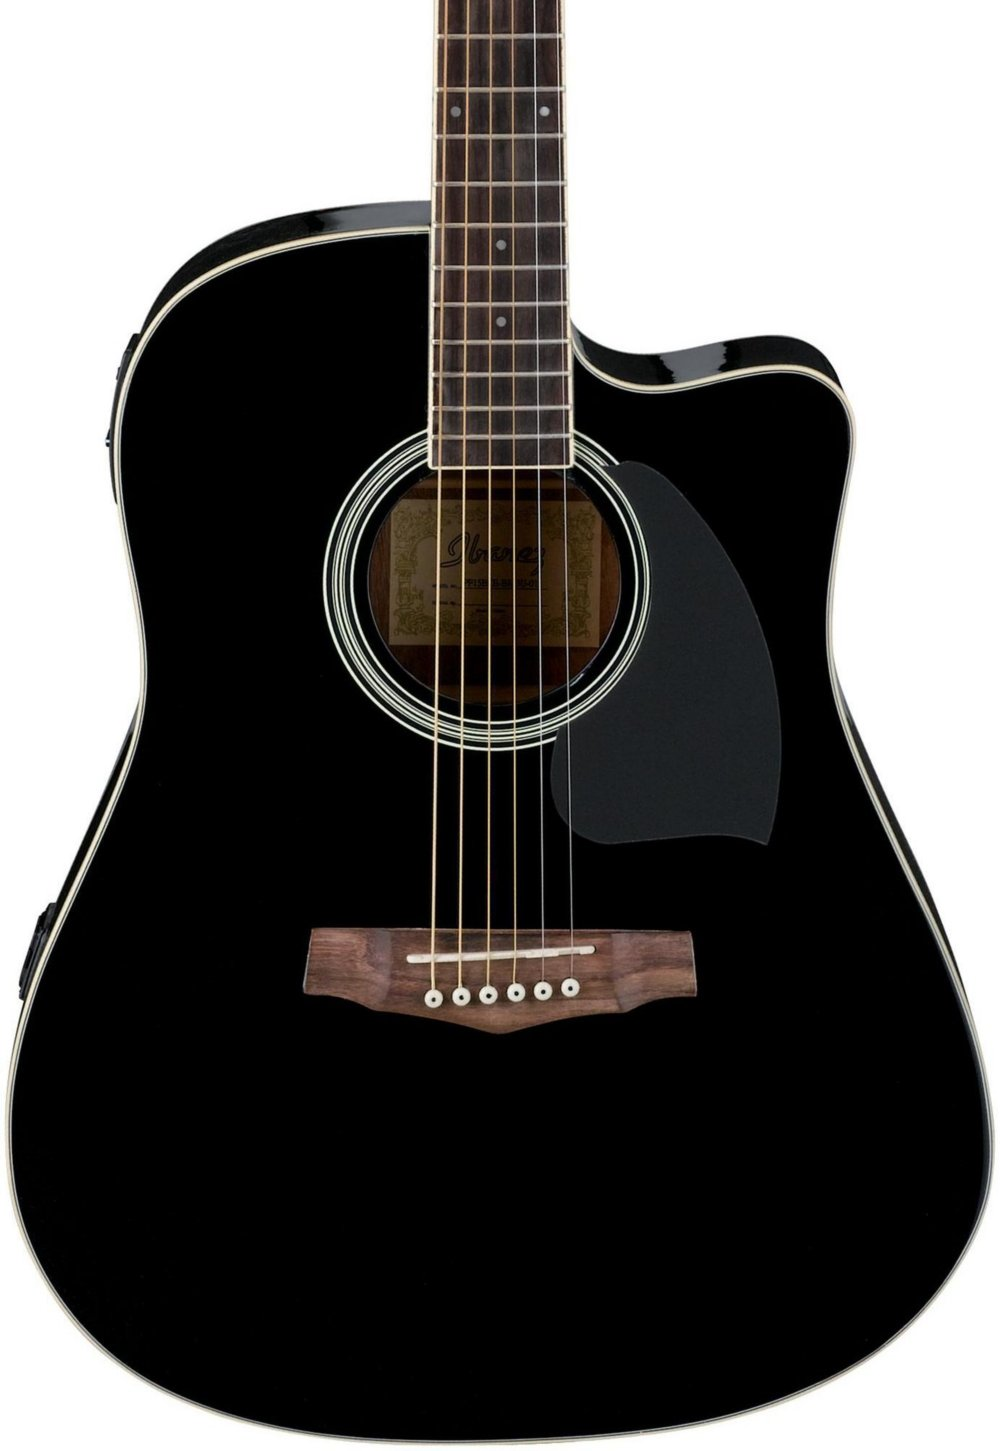 Ibanez PF15ECE Dreadnought Cutaway Acoustic-Electric Cutaway Guitar Black PF15ECEBK